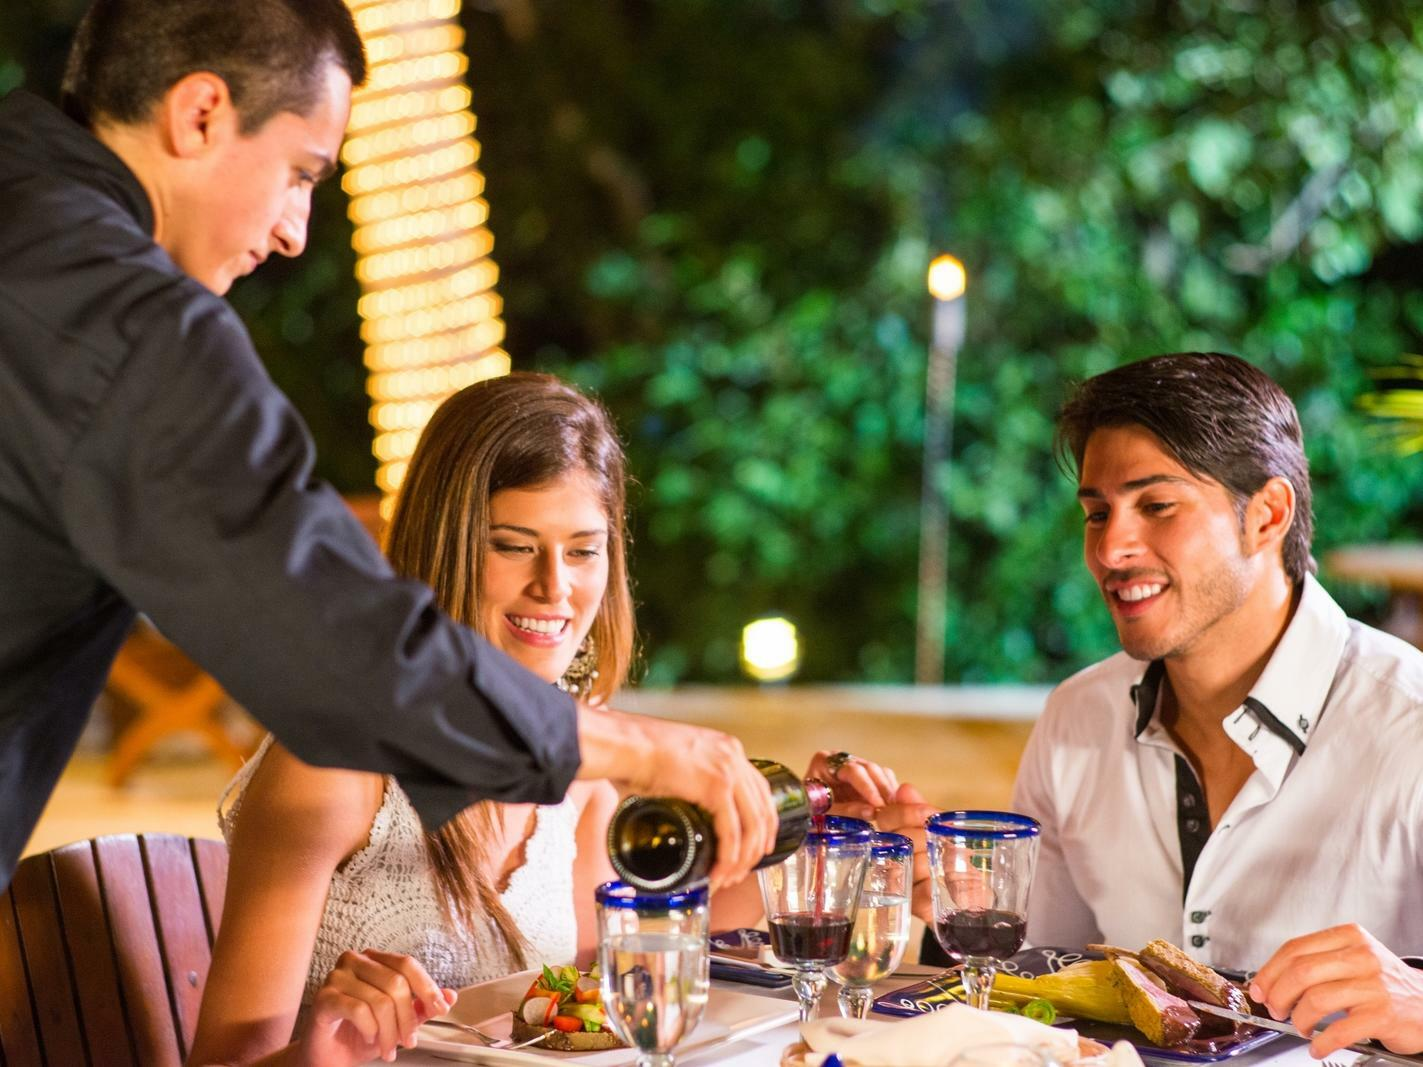 couple being served wine by server